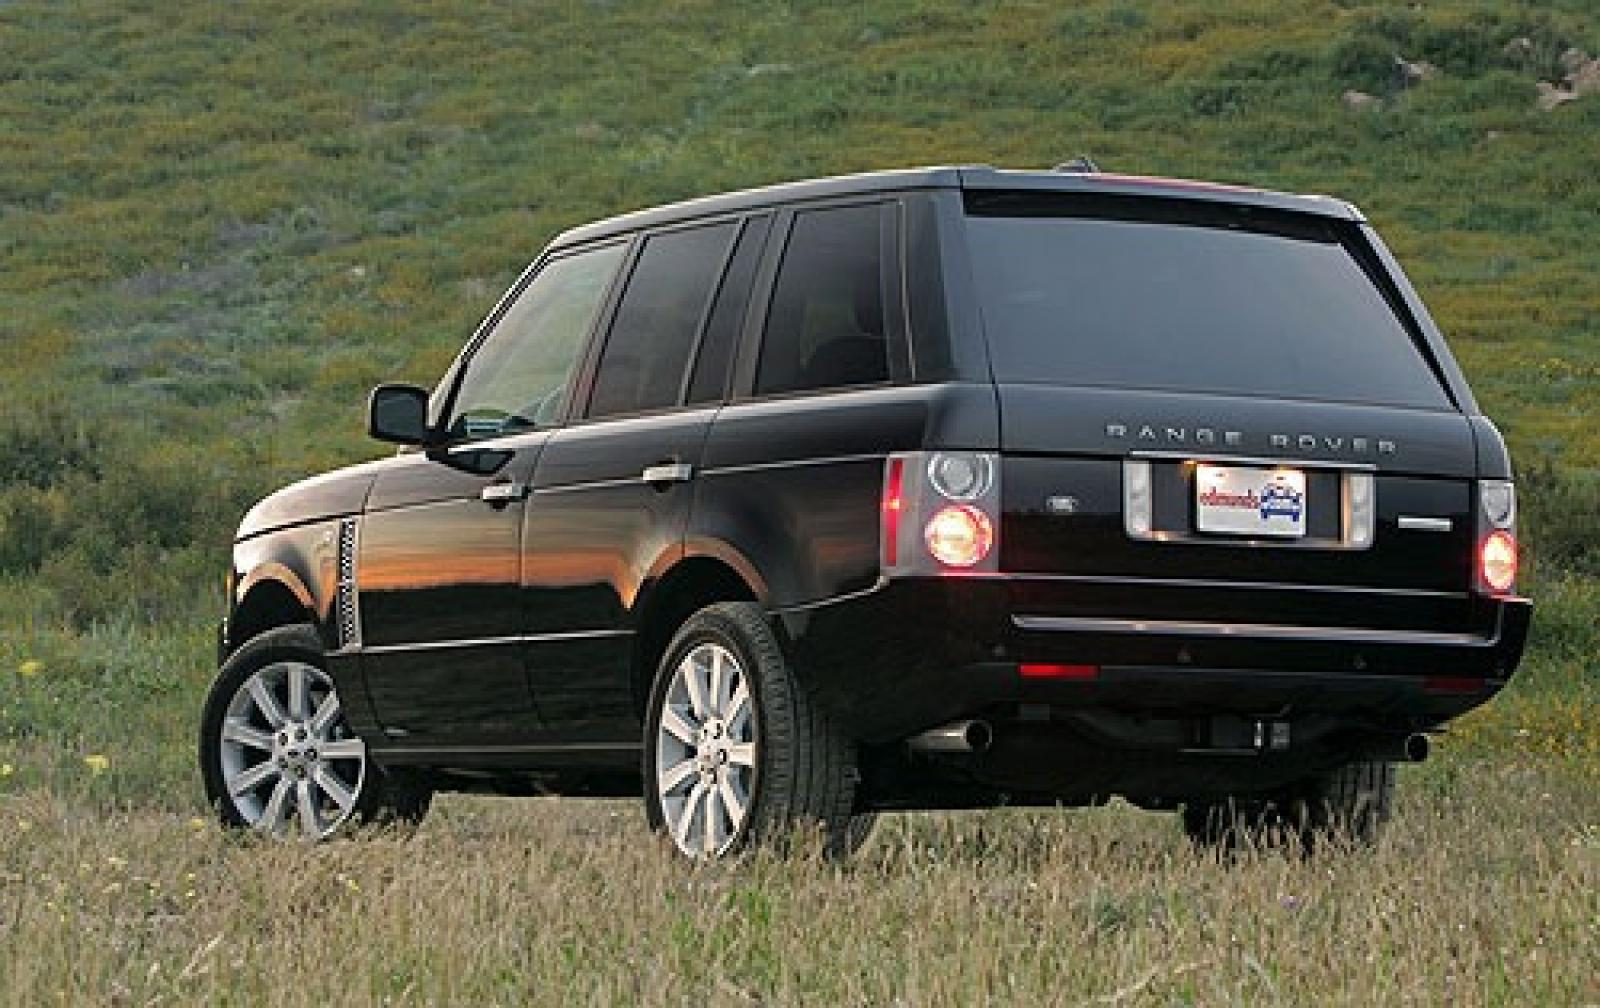 2006 land rover range rover information and photos zombiedrive. Black Bedroom Furniture Sets. Home Design Ideas